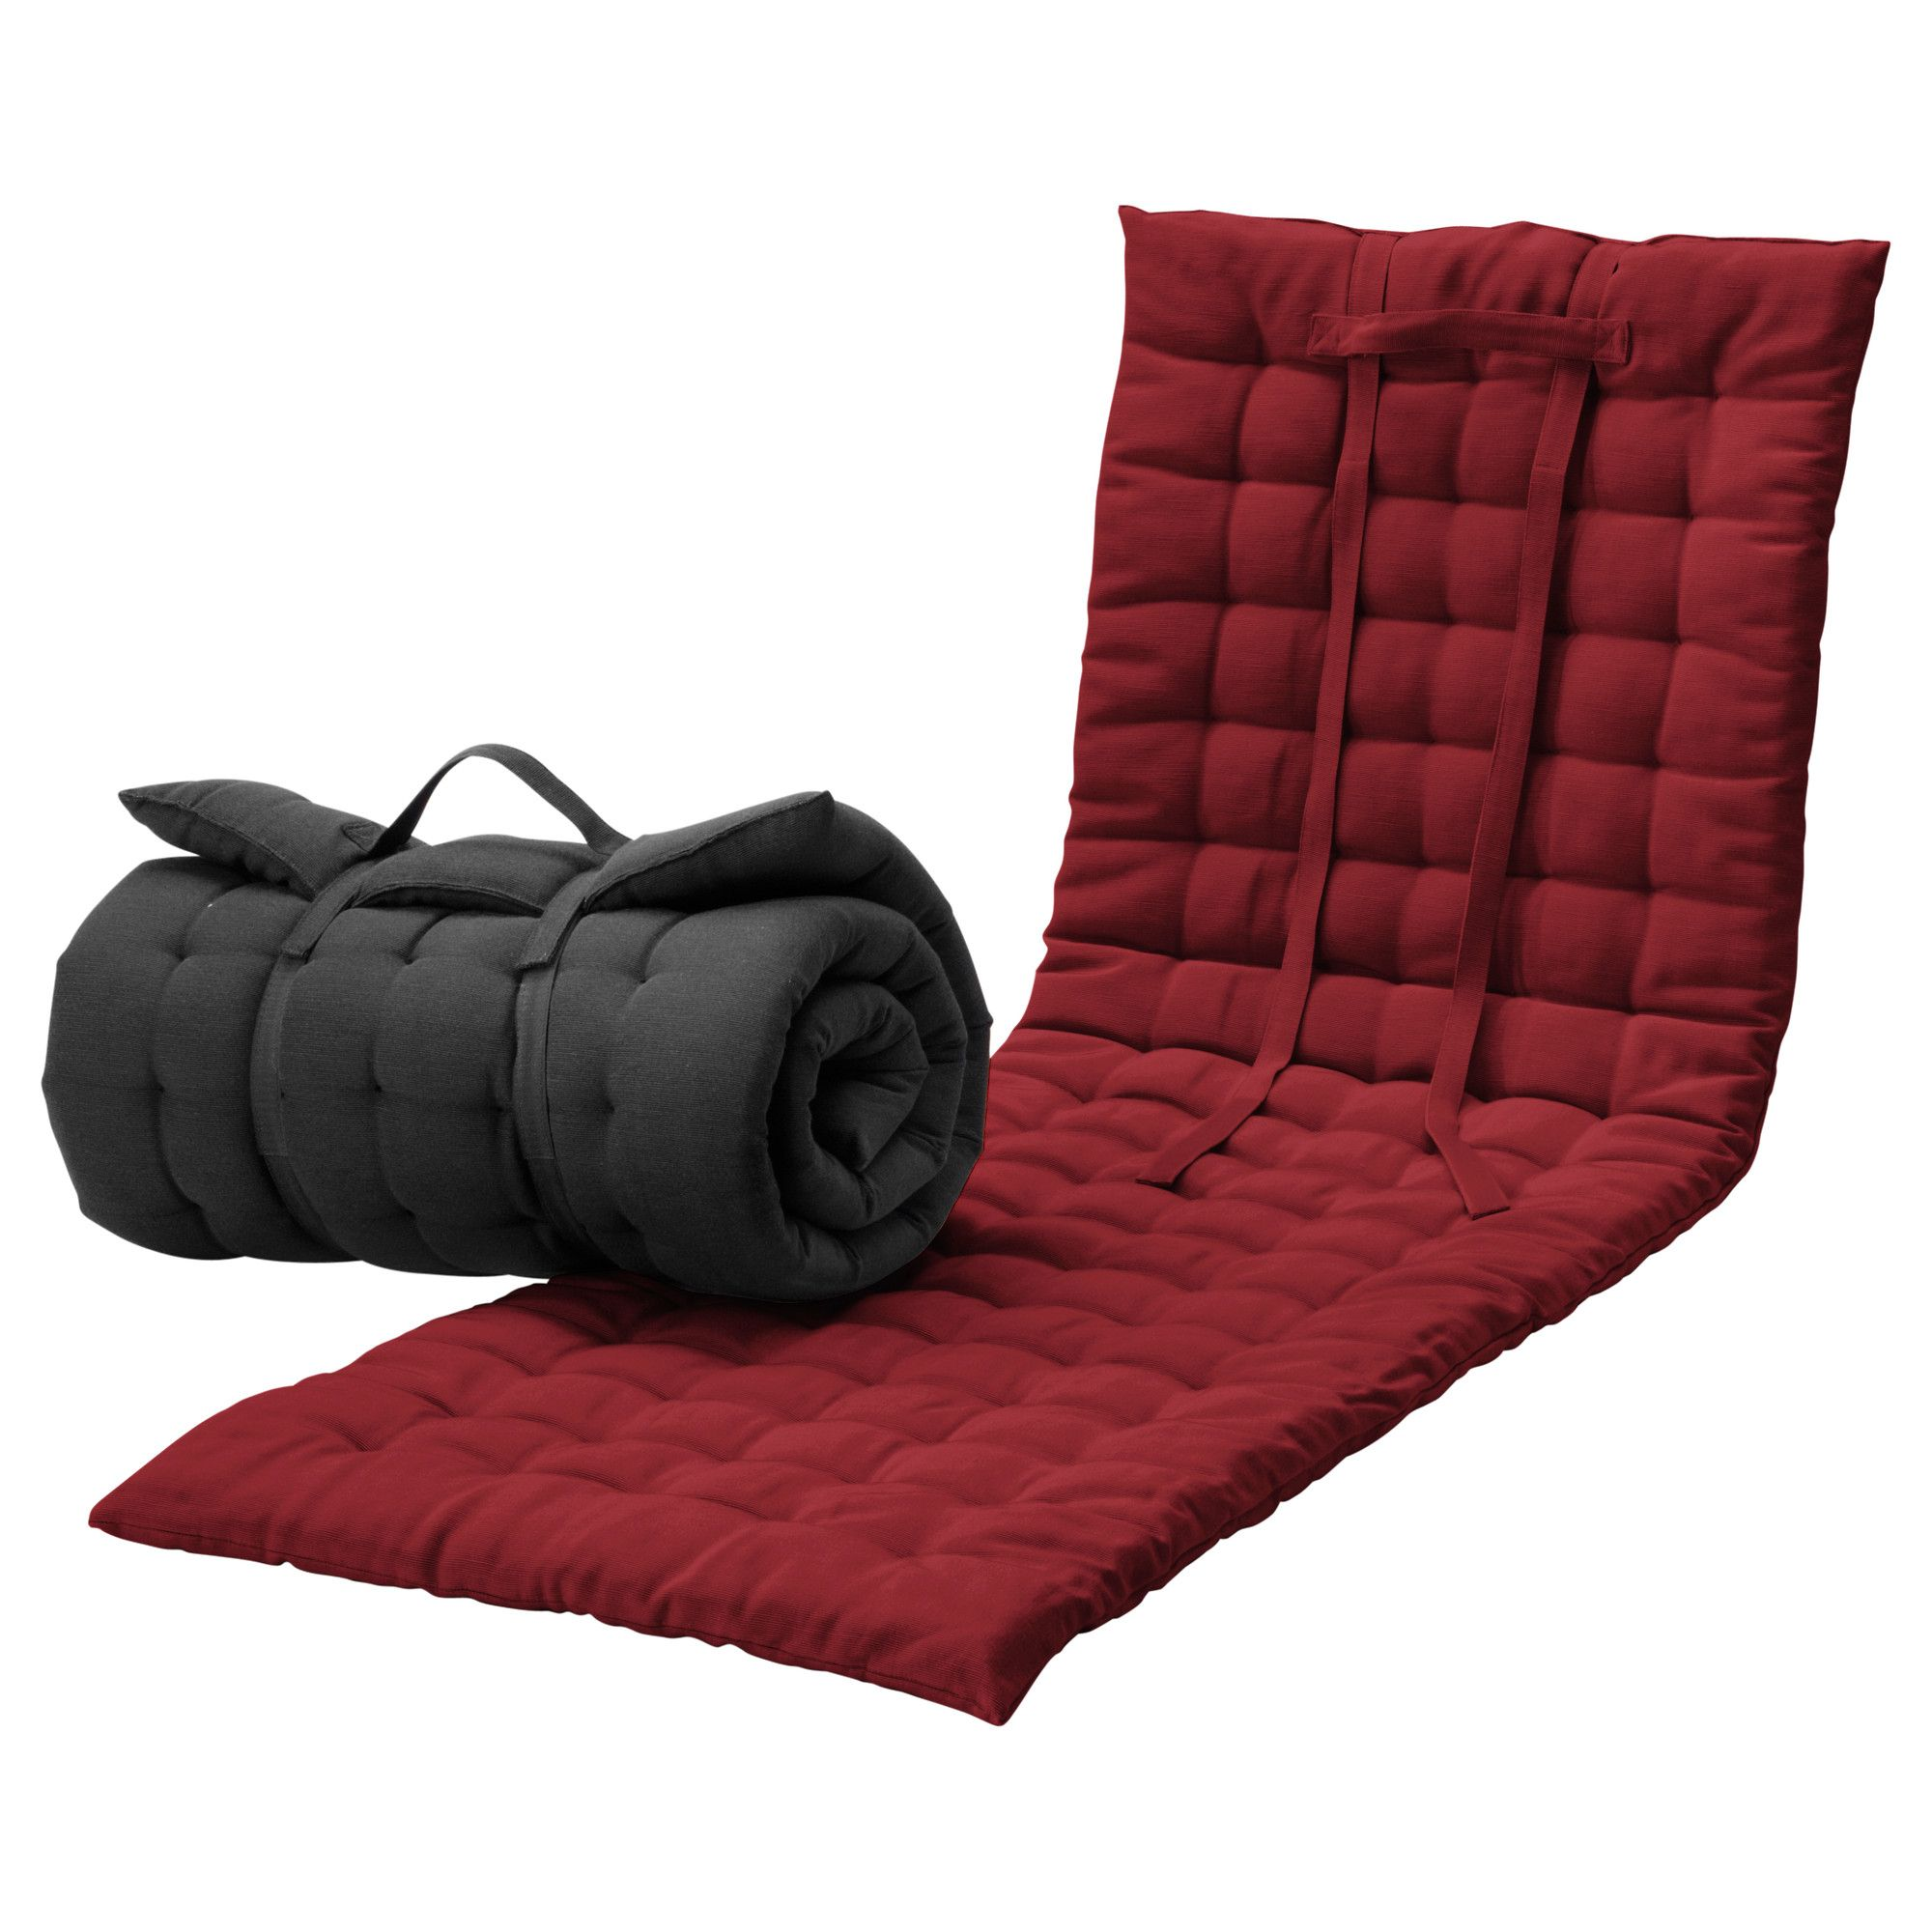 h ll matelas fin bain de soleil noir rouge ikea backyard pinterest soleil noir bain. Black Bedroom Furniture Sets. Home Design Ideas